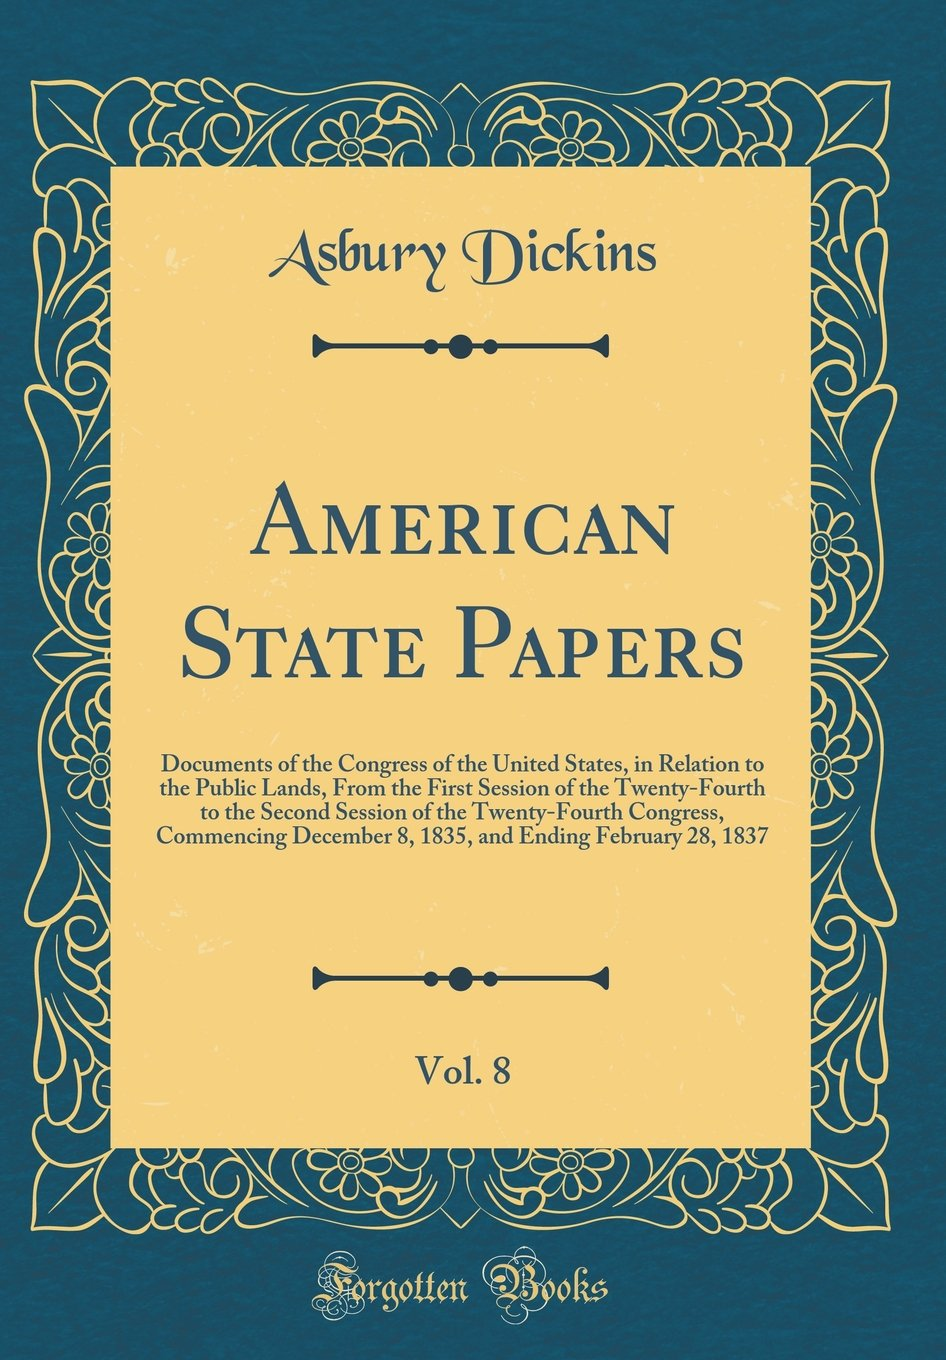 Read Online American State Papers, Vol. 8: Documents of the Congress of the United States, in Relation to the Public Lands, From the First Session of the ... December 8, 1835, and Ending Februa pdf